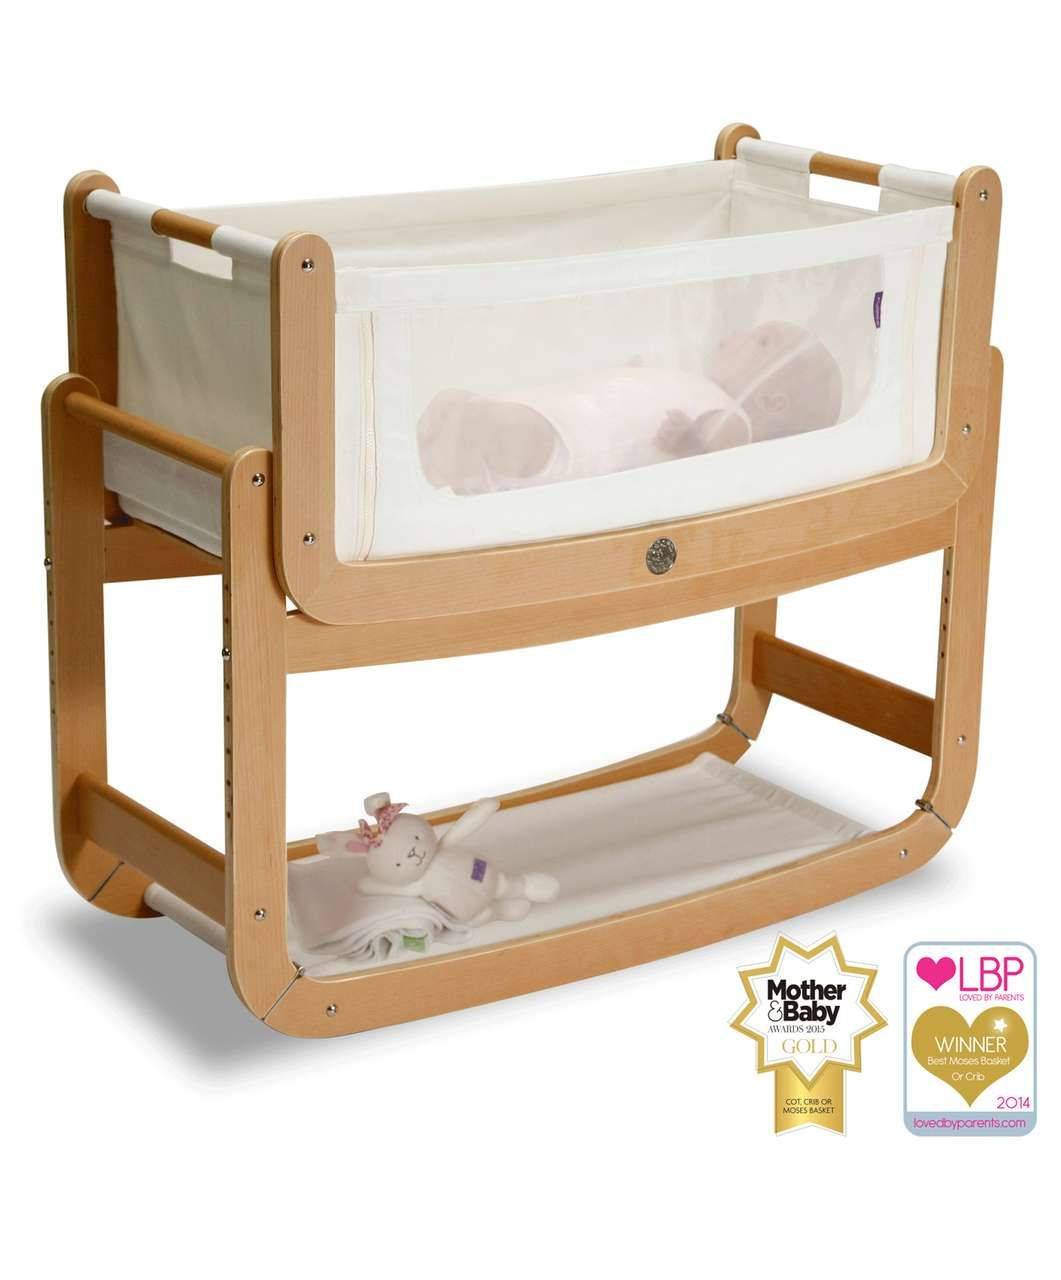 Saplings katie crib for sale - Wooden Bedside Cot Variable Height Nursery Furniture Baby Crib View More On The Link Http Www Zeppy Io Product Gb 2 282094475435 Baby Pinterest